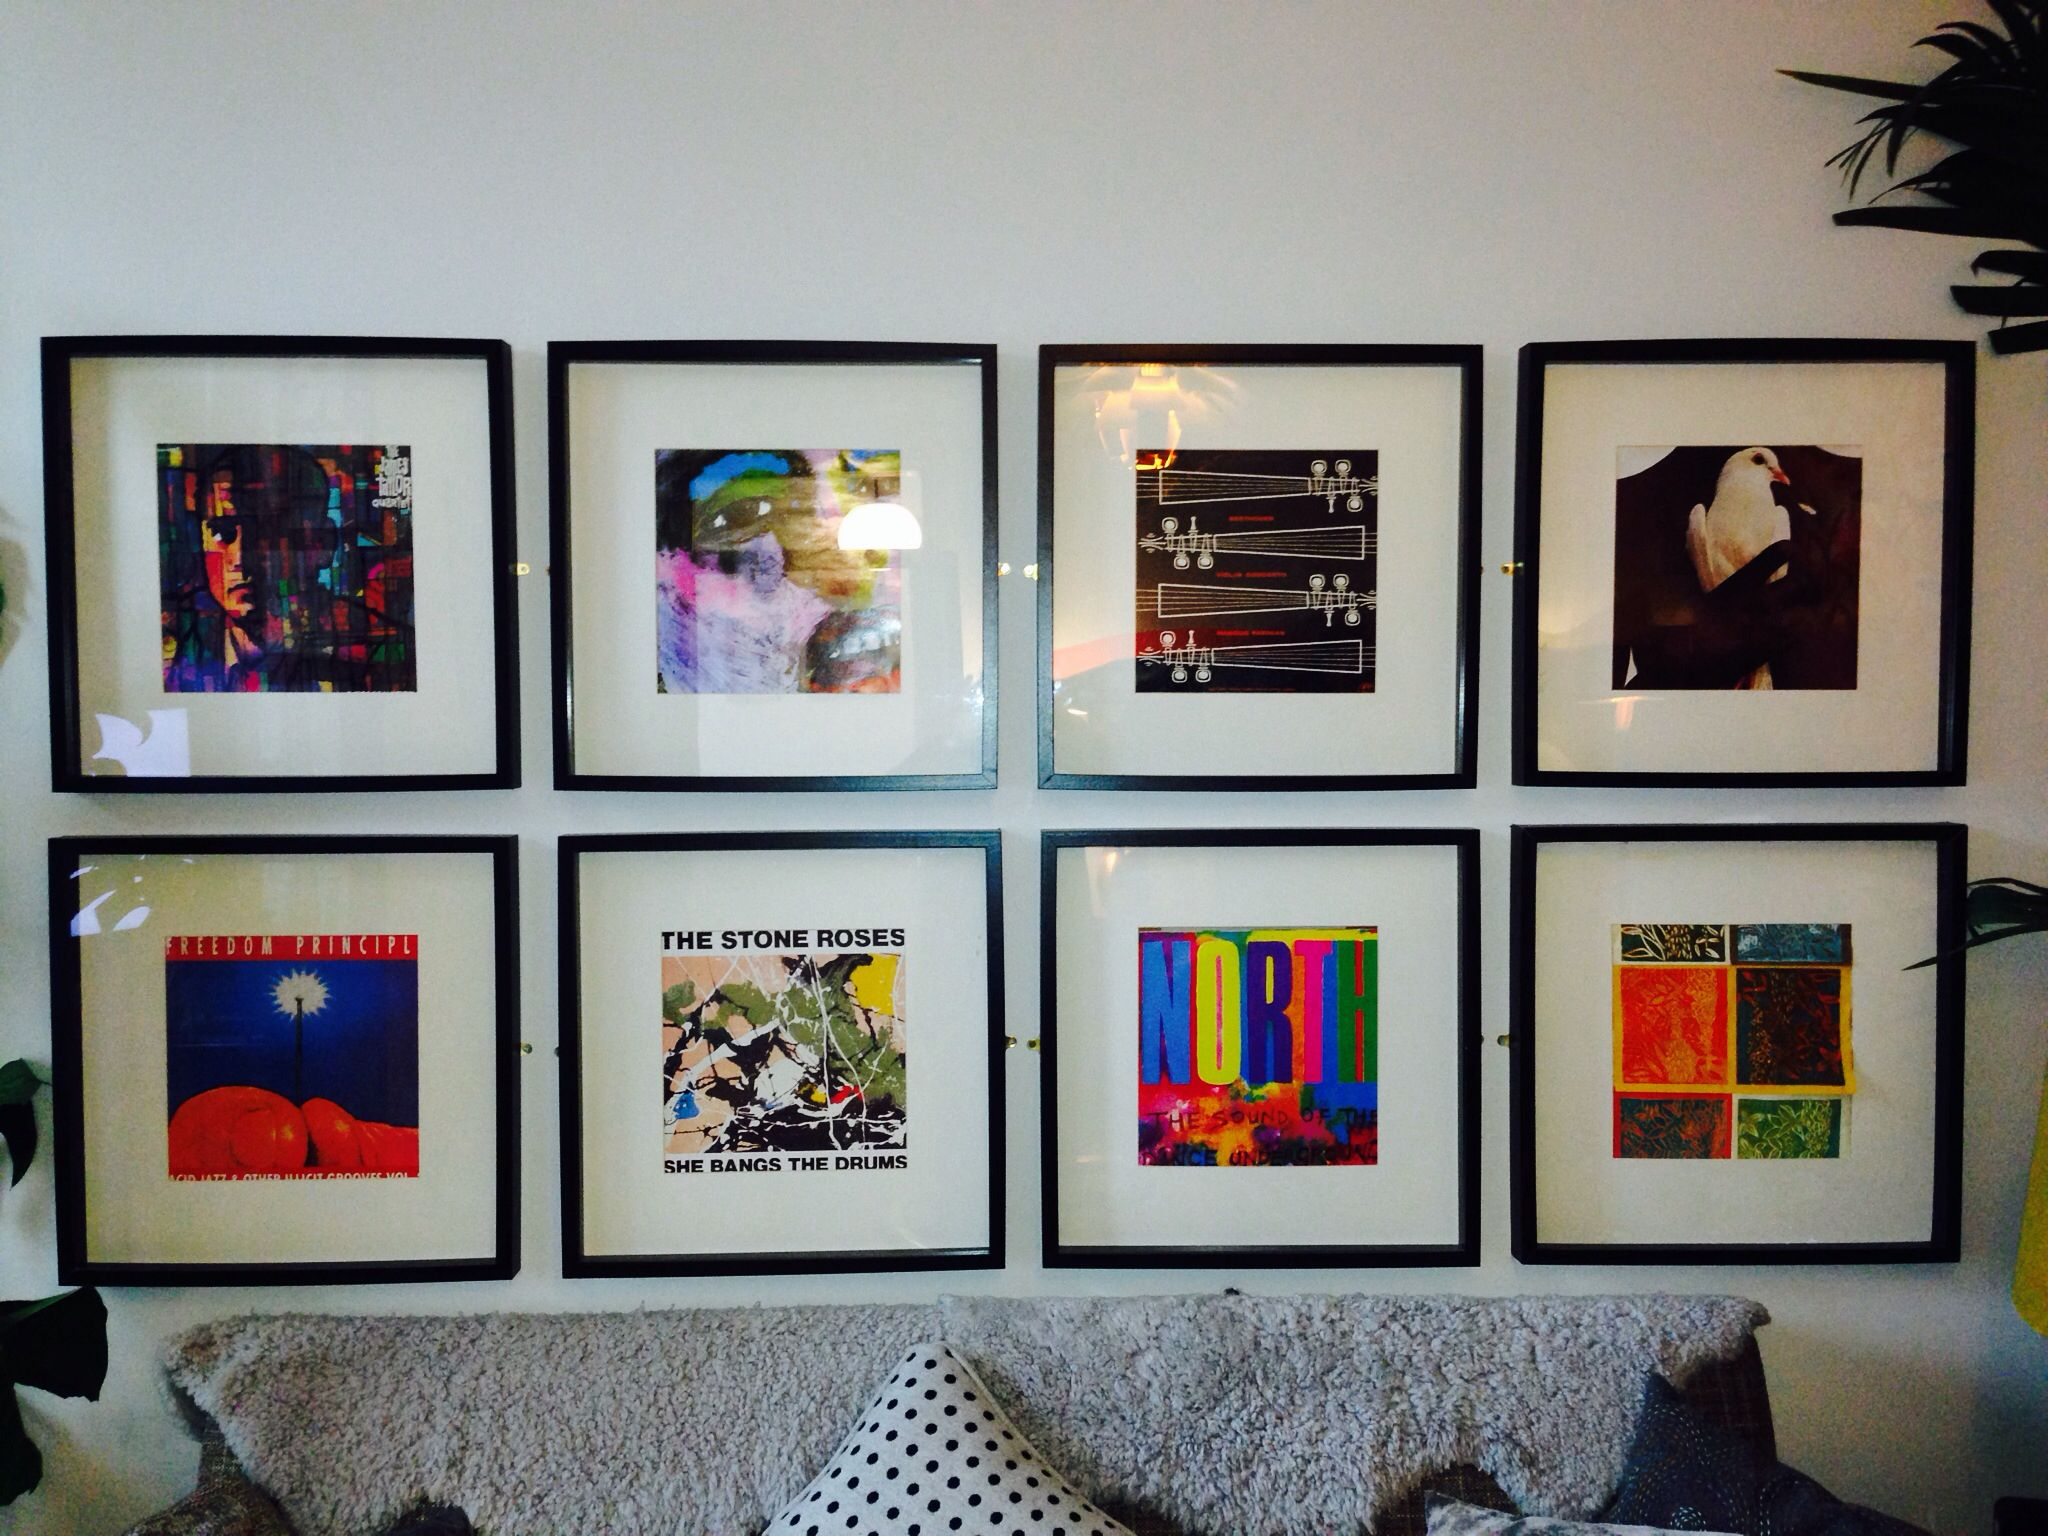 Ikea Wall Frames Uk Record Covers In Blk Ikea Frame Ikea Frames Picture